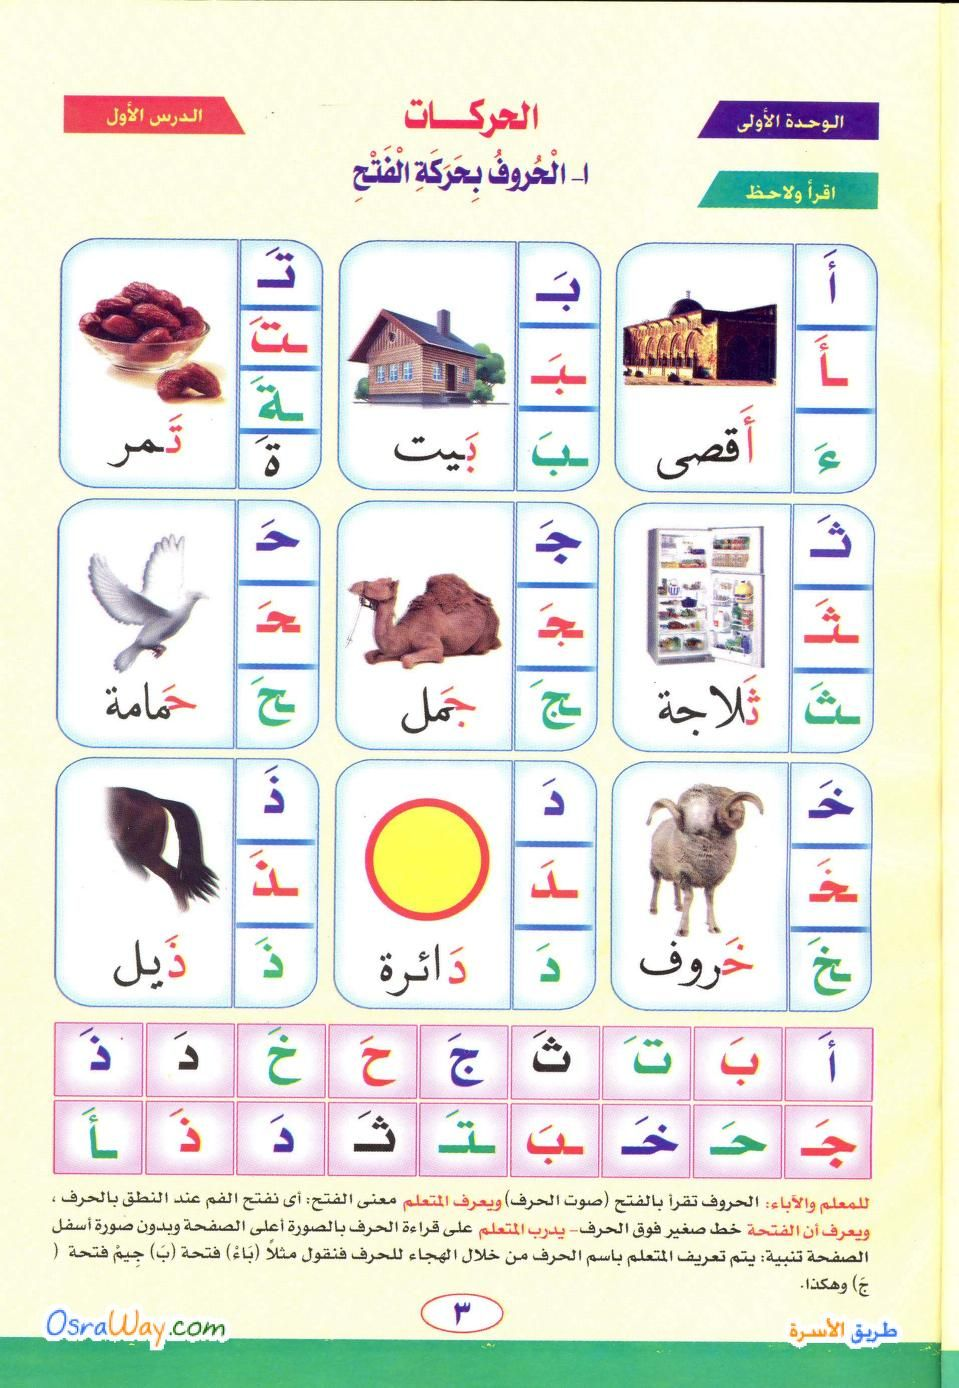 Nour Al Bayan New Book With Colors High Qualtiy Pdf Osraway Com Abu Alhaytham Free Download Borrow And Streaming Internet Archive Classroom Signs Baby Cartoon Characters First Grade Worksheets